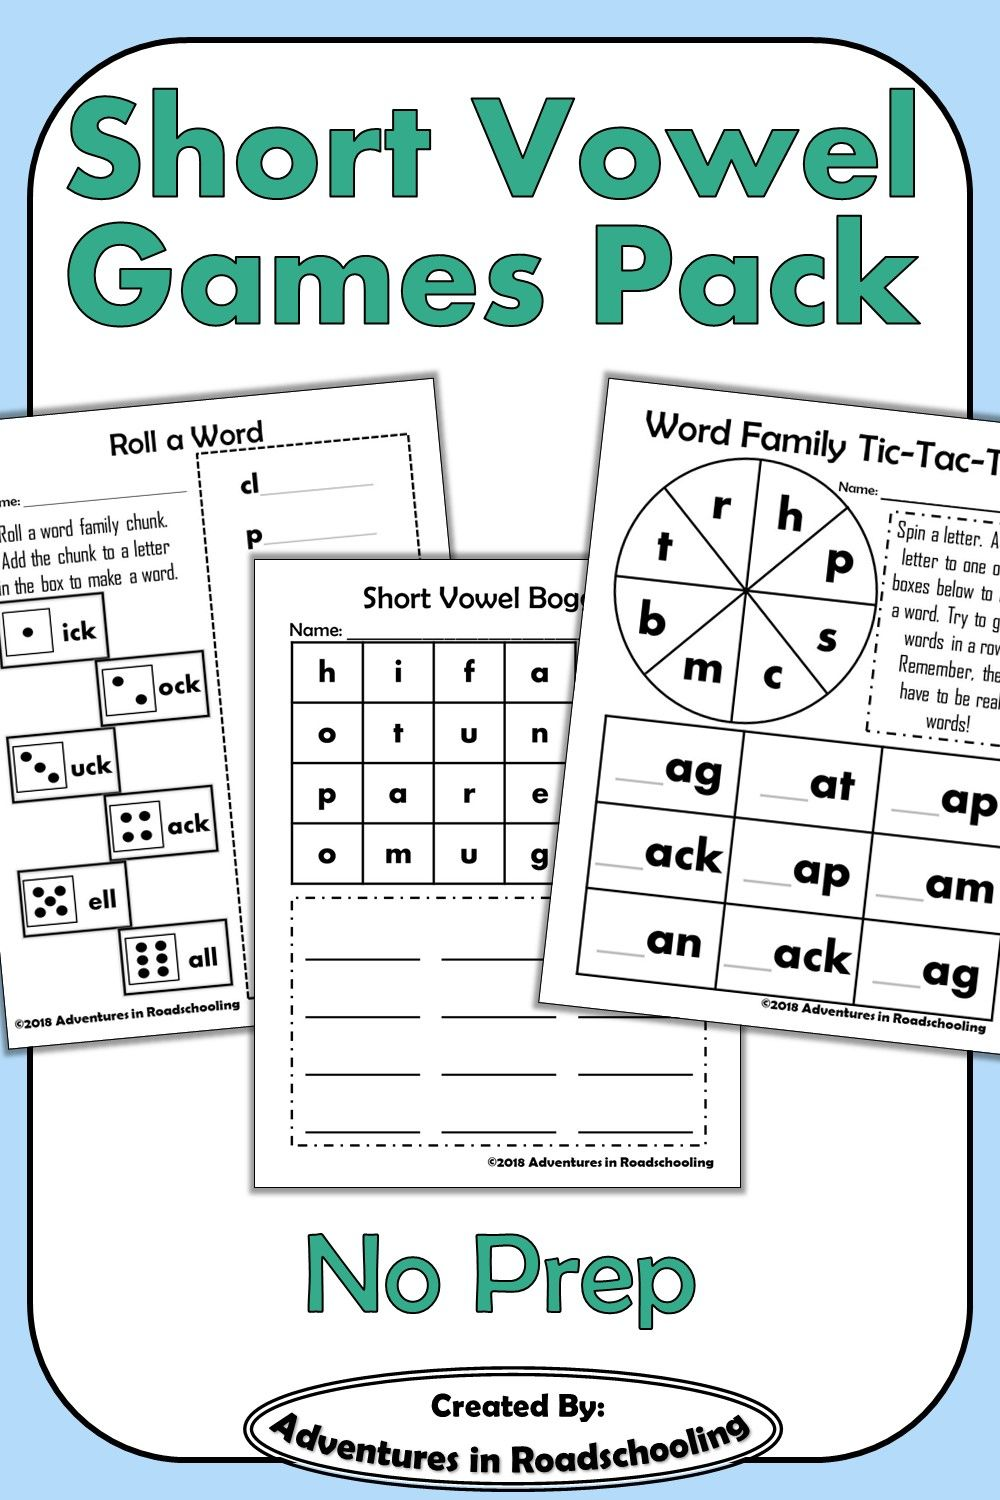 Short Vowel Games And Activities Pack Short Vowel Games Word Study Games Short Vowels [ 1500 x 1000 Pixel ]